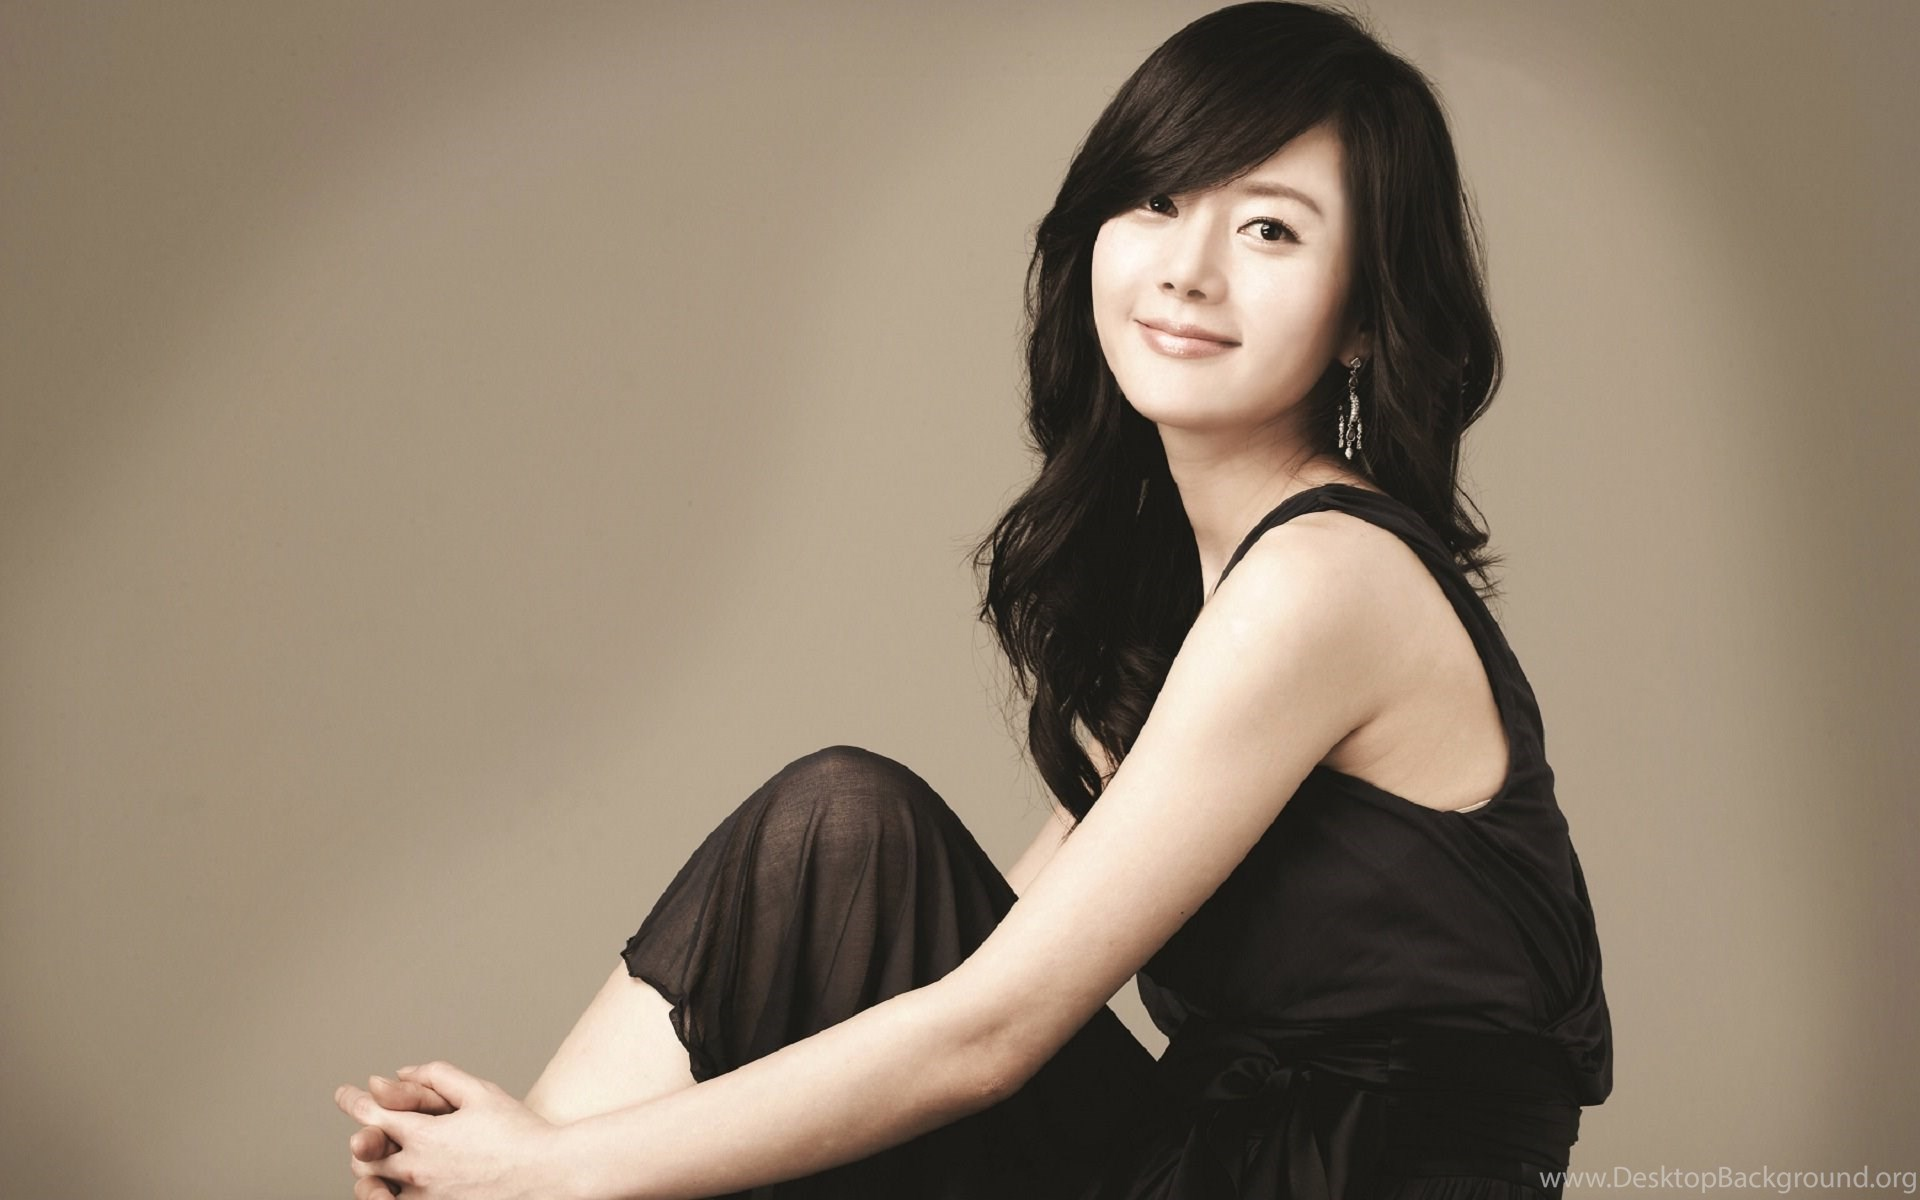 Cute Chinese Young Girl Hot Photos New Hd Wallpapernew - Cute Girls Hot Wallpaper Hd , HD Wallpaper & Backgrounds